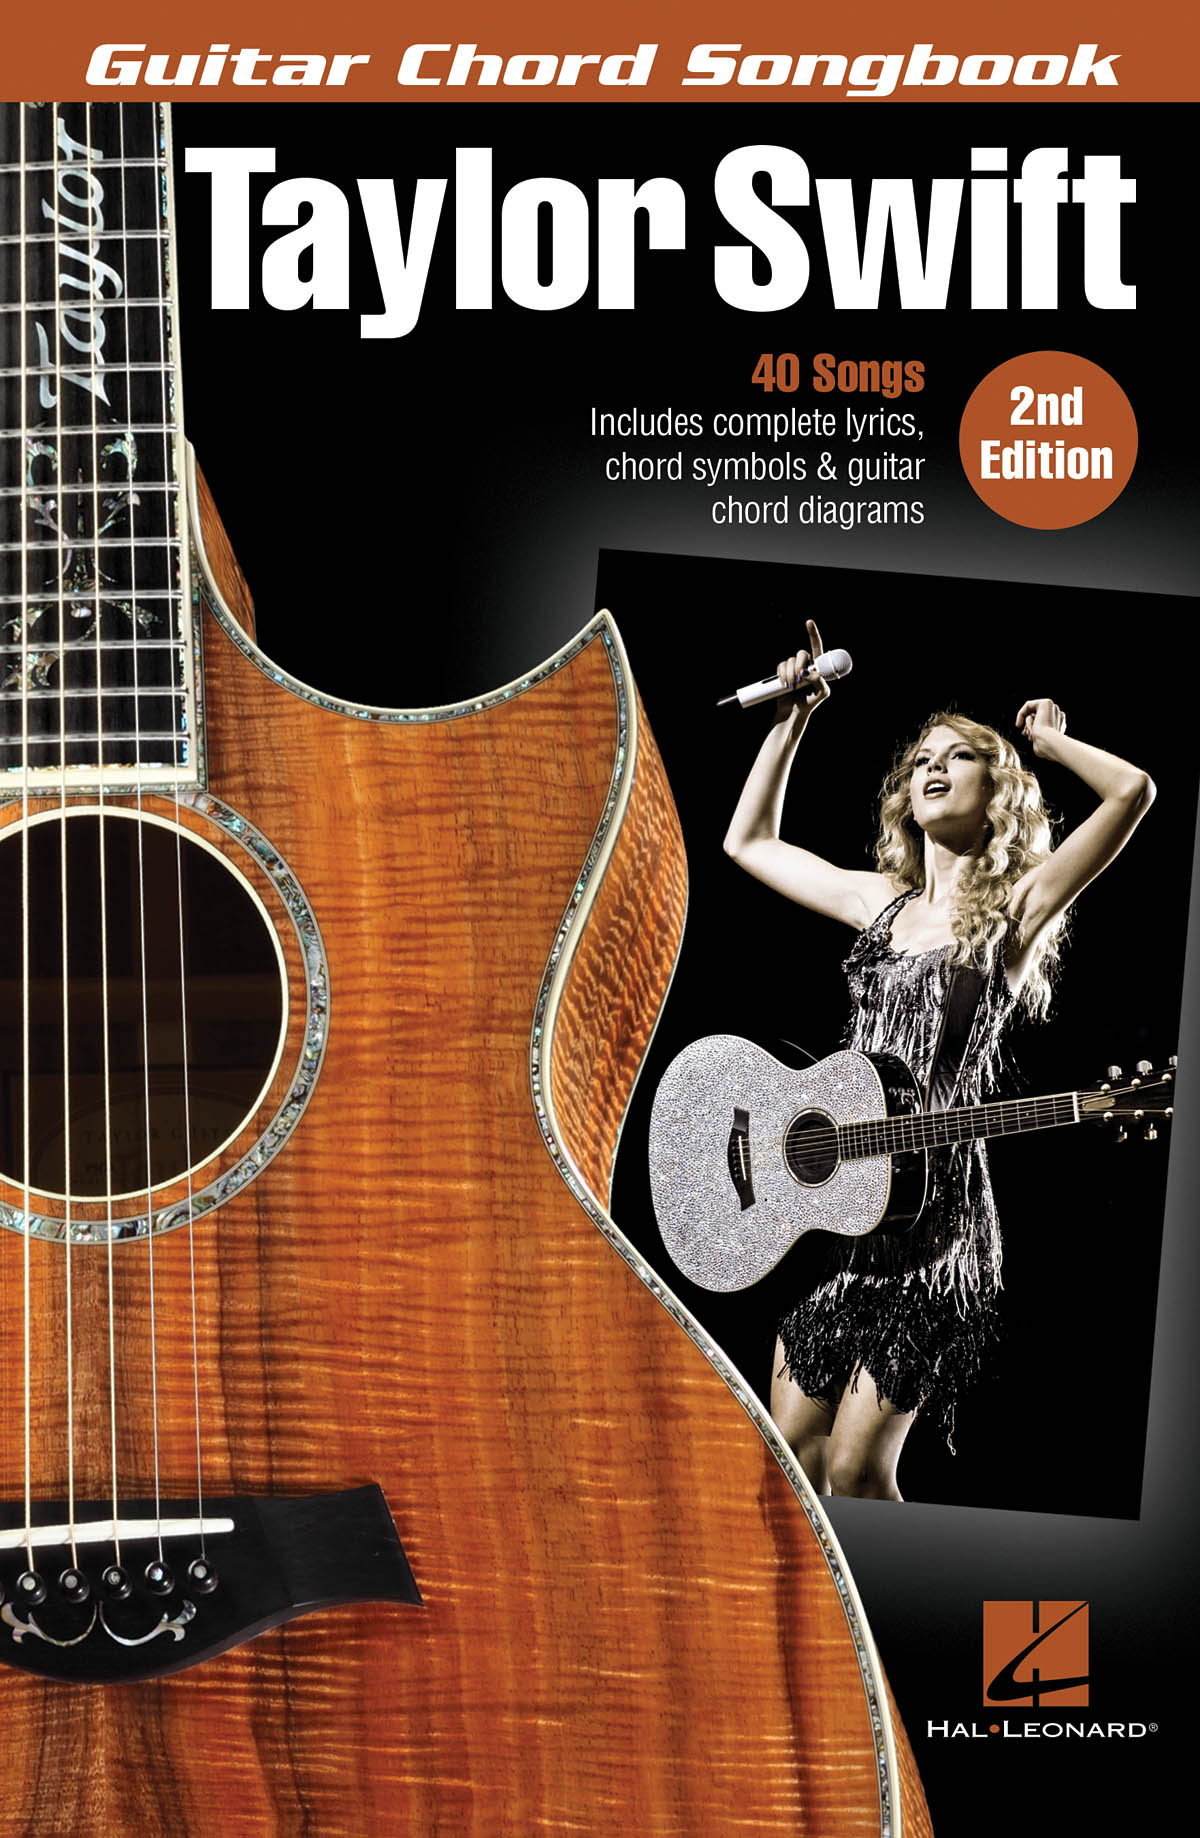 Taylor Swift: Taylor Swift - Guitar Chord Songbook - 2nd Edition: Guitar Solo: